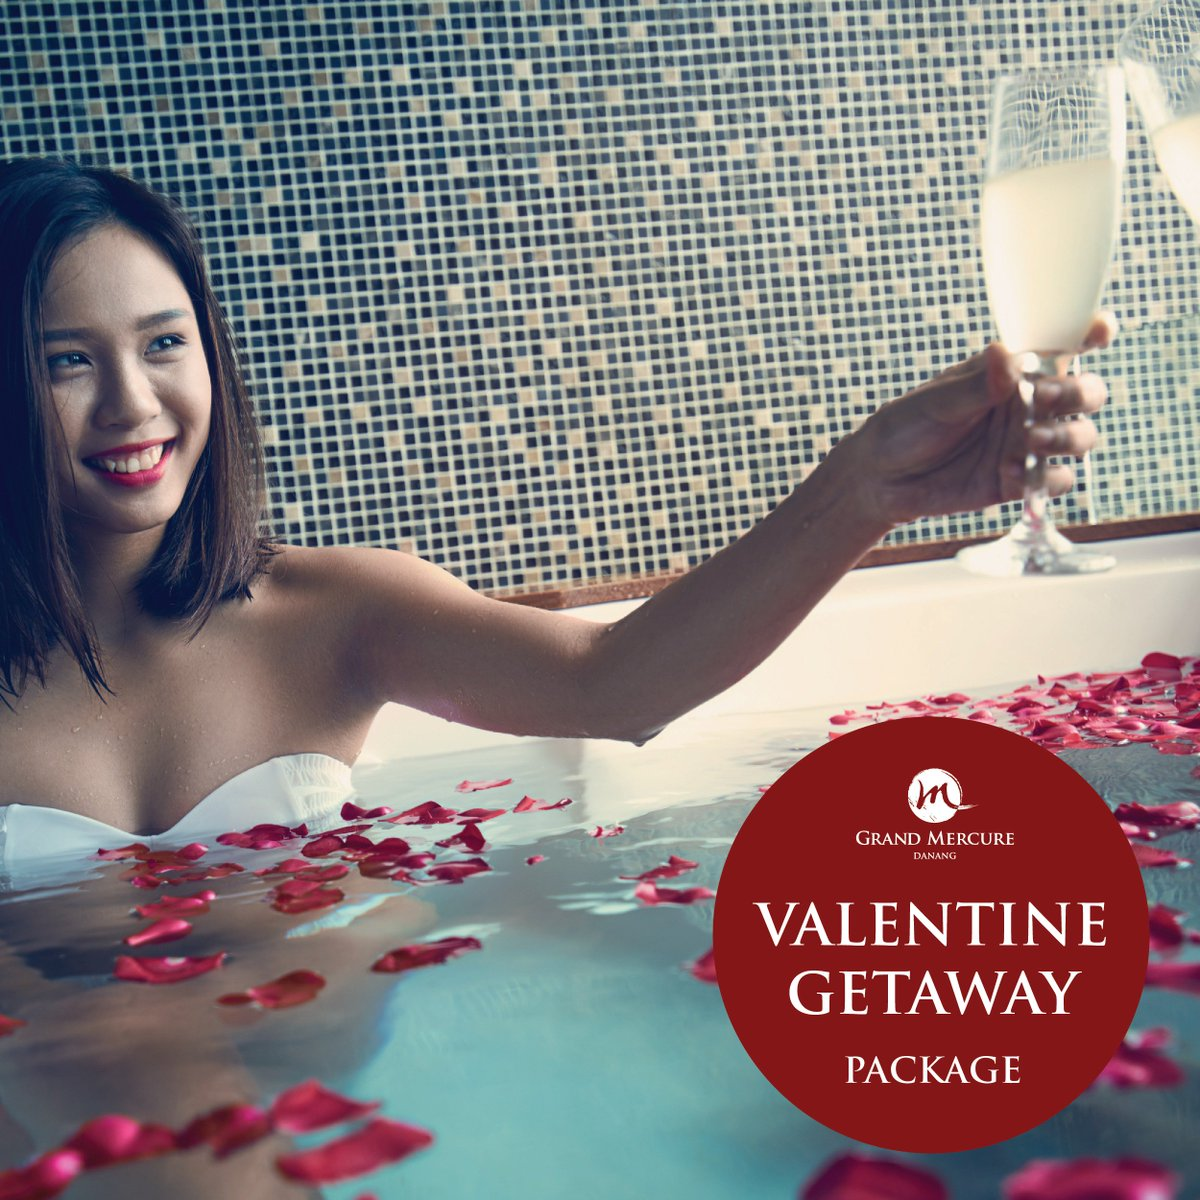 Indulge in a luxurious stay at @GrandMercure_DN this #Valentine's Day with exclusive package for you and her.. - 1 night in Deluxe room with breakfast - In-room romantic set up - Access to privilege lounge - Valentine Dinner for 2 on 14.02.2019 - 40% OFF for all Spa treatment https://t.co/rAhheZ3H2q